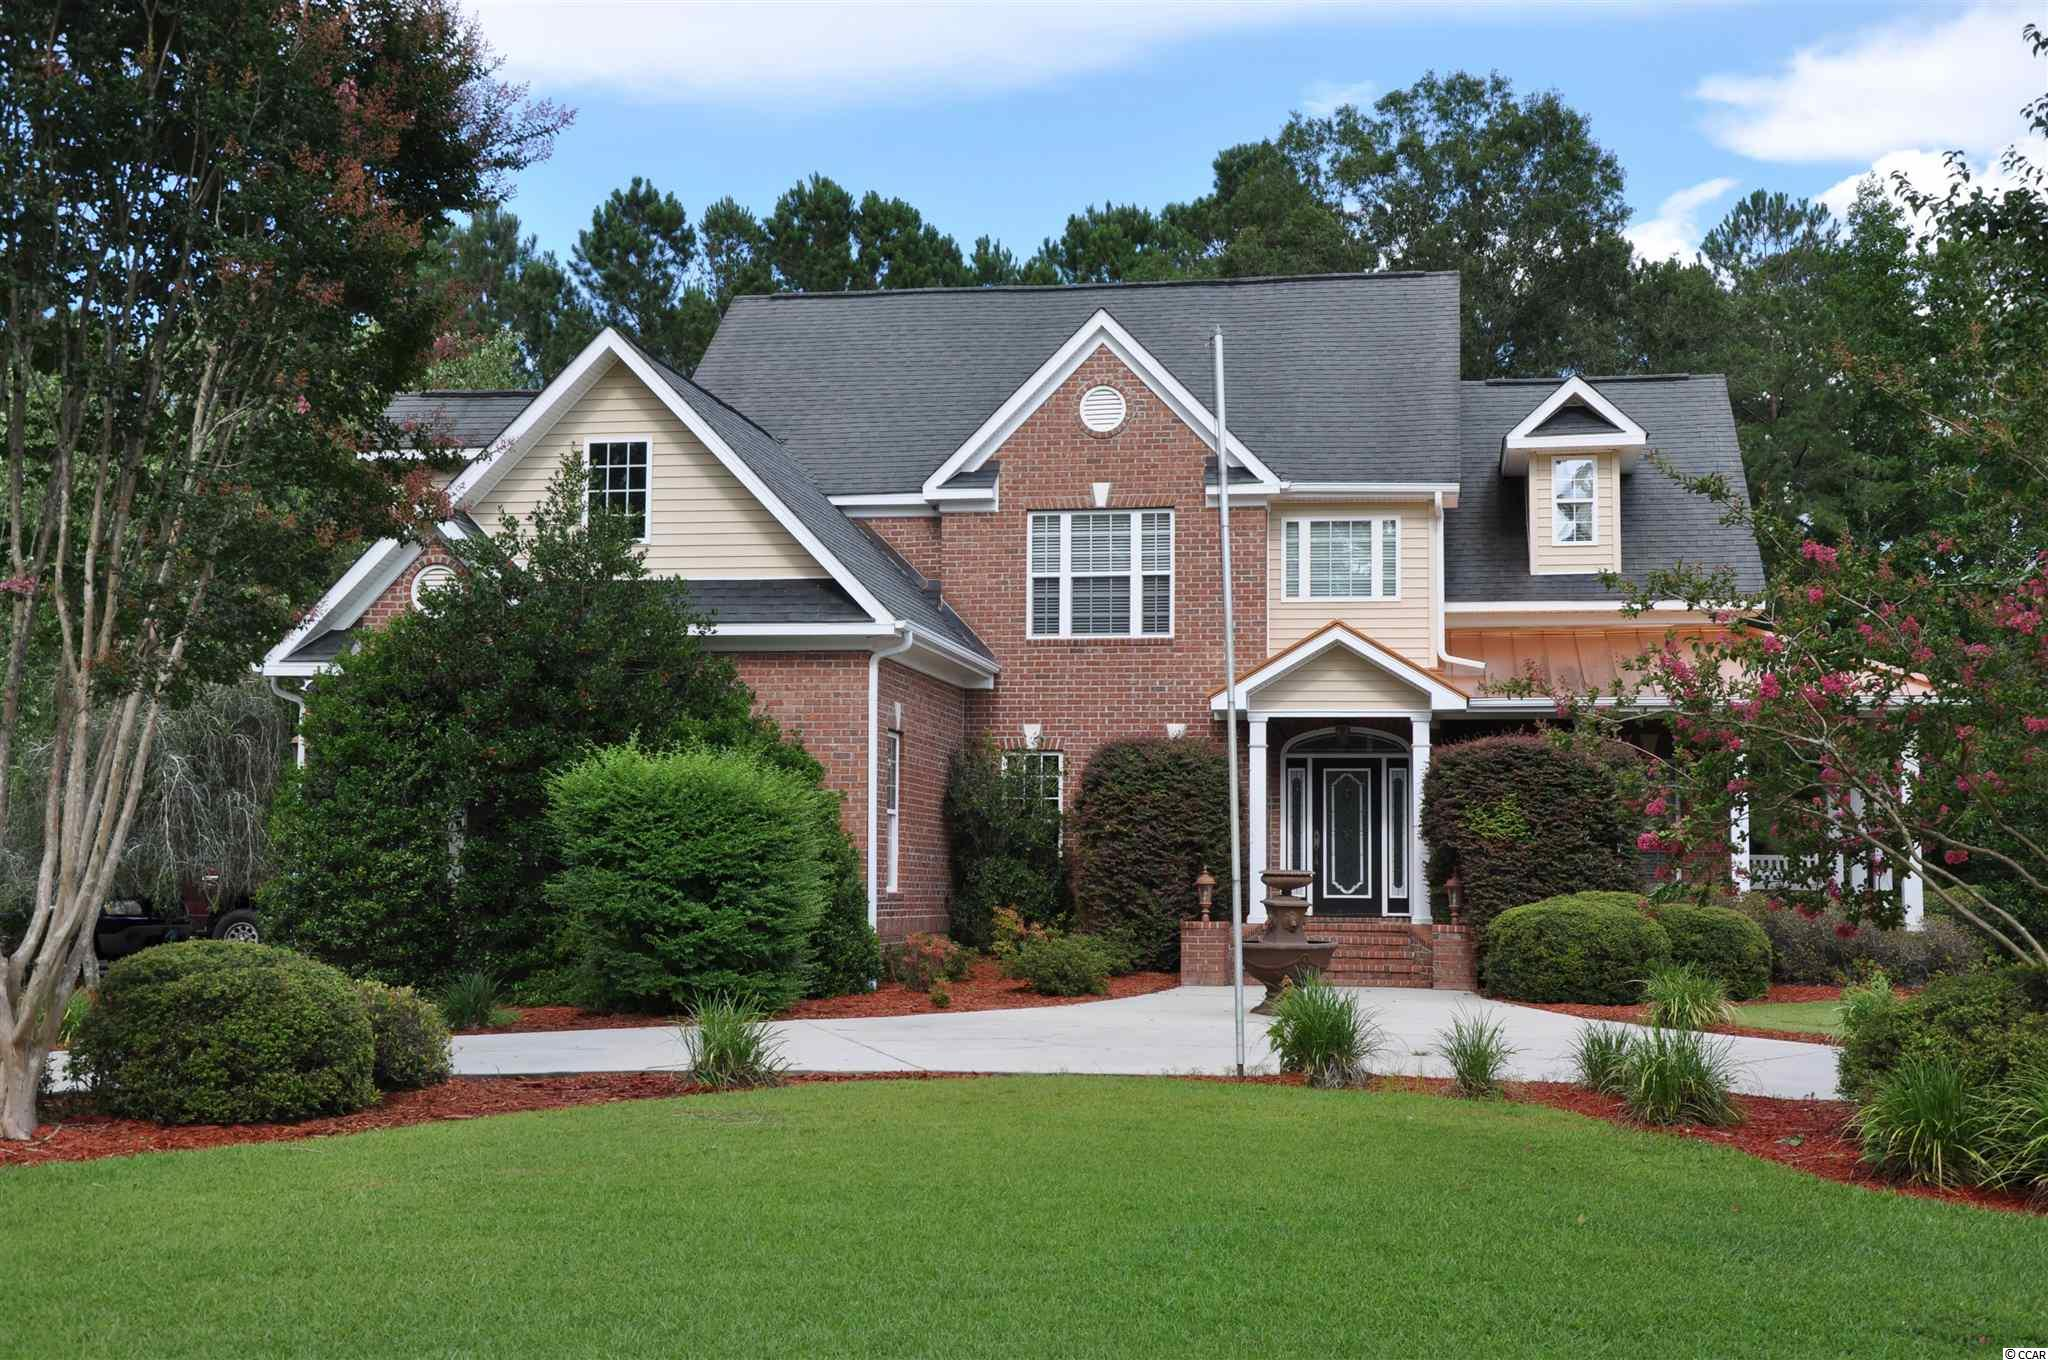 Beautiful spacious, custom built, 5 bedroom 2.5 bath, all-brick home sitting on 1.62 acres in a gorgeous country setting off Hwy 134 in Conway within minutes of Historic Downtown. This home has so many appealing features starting with a circle driveway and an additional side driveway with an oversized 20x28 two car garage. Home has pocket doors and bamboo hardwood floors throughout, 9 foot ceilings and an upstairs 21x20 Family/Recreation room with 11 foot ceilings which can also be an extra large additional bedroom. The kitchen boasts of corian countertops, beautiful backsplash, tons of storage and an additional pantry off of the kitchen near the laundry room.  The master bedroom has a double tray ceiling with accent lighting, plantation shutters, a large master bathroom with a jetted tub, large walk-in shower with dual shower heads and two walk in closets. There is also an additional room off of the Living room which can be used as an office and is plumbed for a wet bar. This 1.62 acre lot provides tons of parking for your boat/RV and vehicles. The spacious backyard is great for outside entertaining with featuring a relaxing covered back porch, a large deck and backyard fire pit that conveys. Such a unique home! Make a showing appointment today.